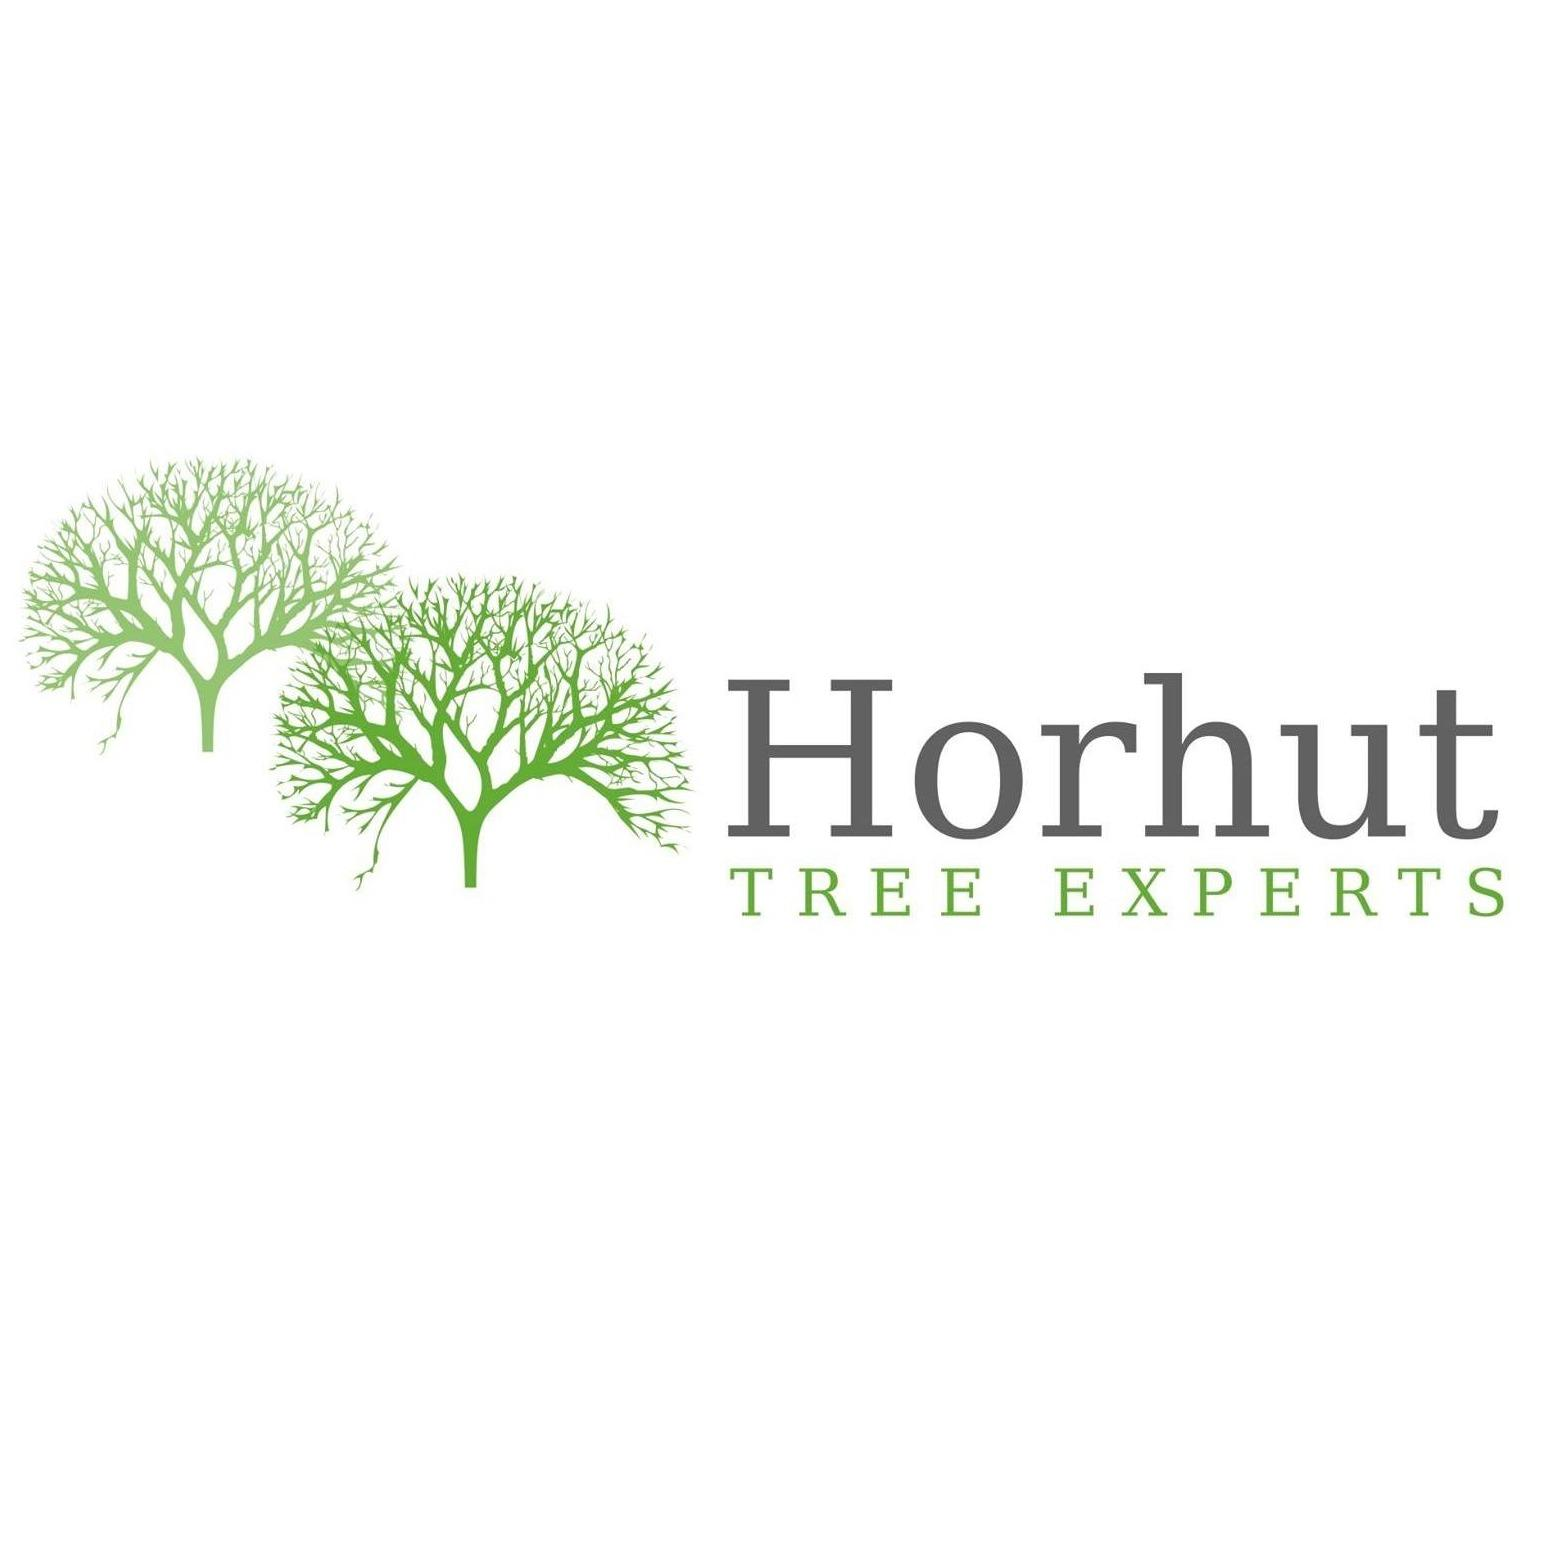 Horhut Tree Experts